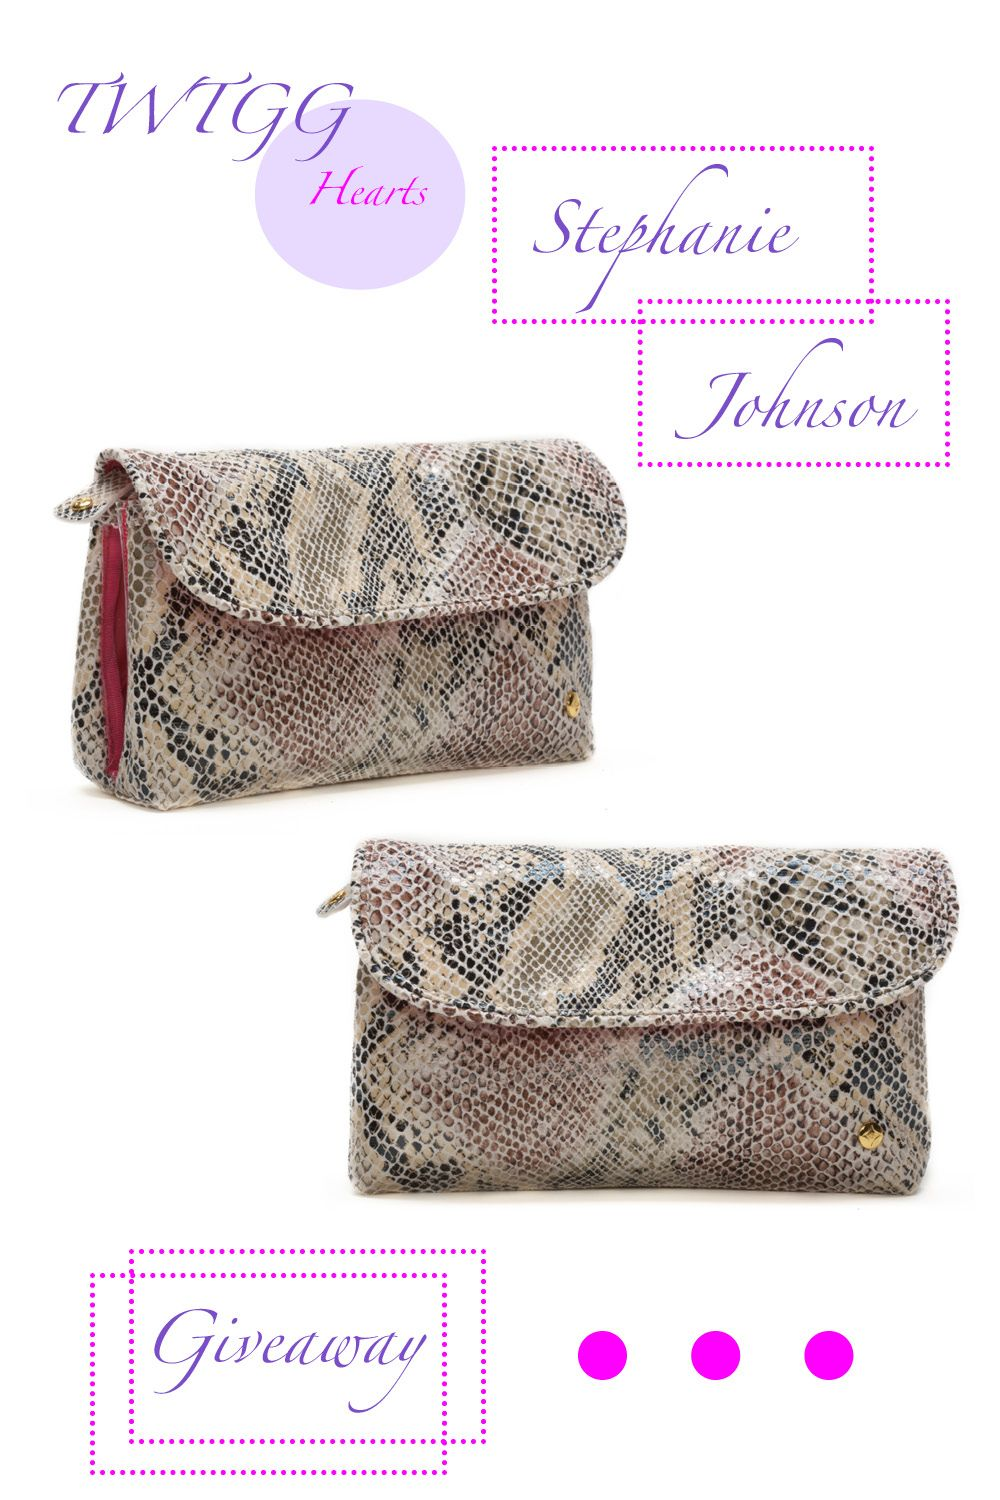 Enter this giveaway for your chance to win this fabulous @sjtraveler bag. theweartogogirls.com